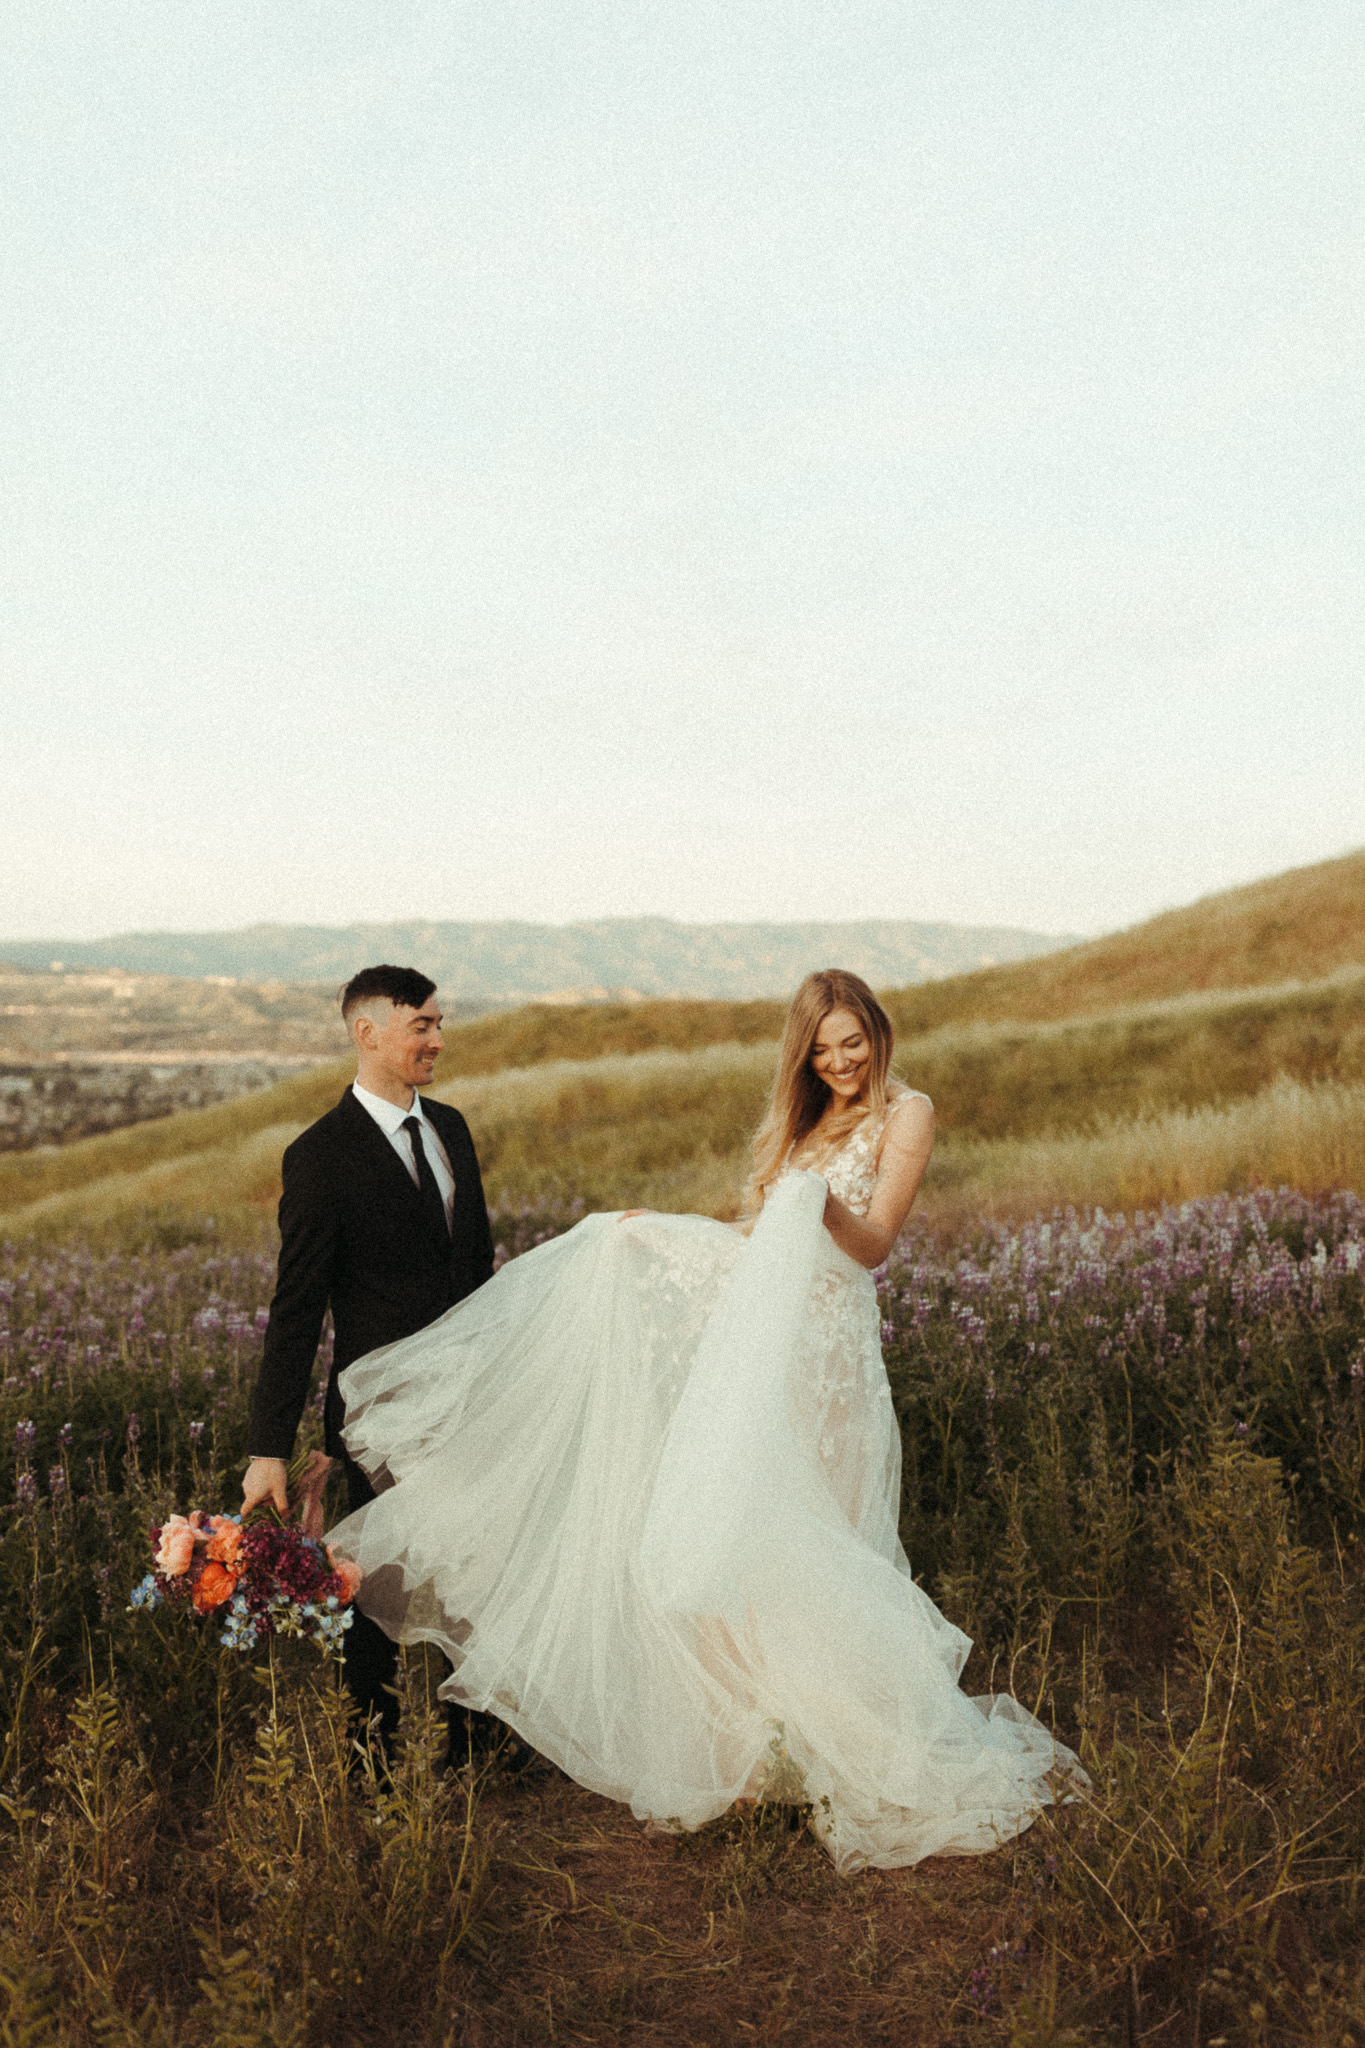 fun candid elopement day at sunrise in some lupine fields